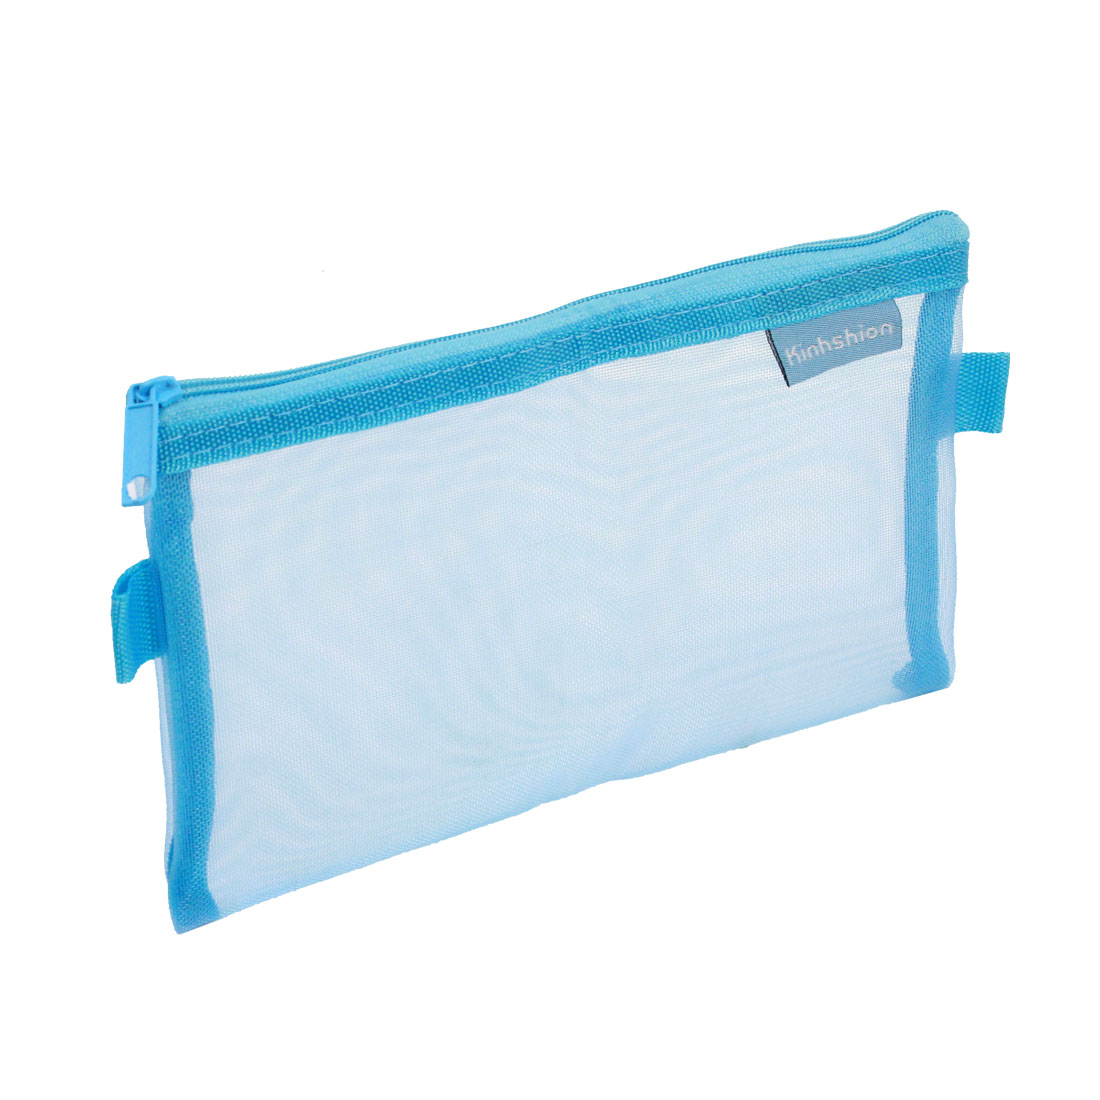 Zip up Nylon Mesh Pencil Pen Stationary Holder Case Bag Blue for Students